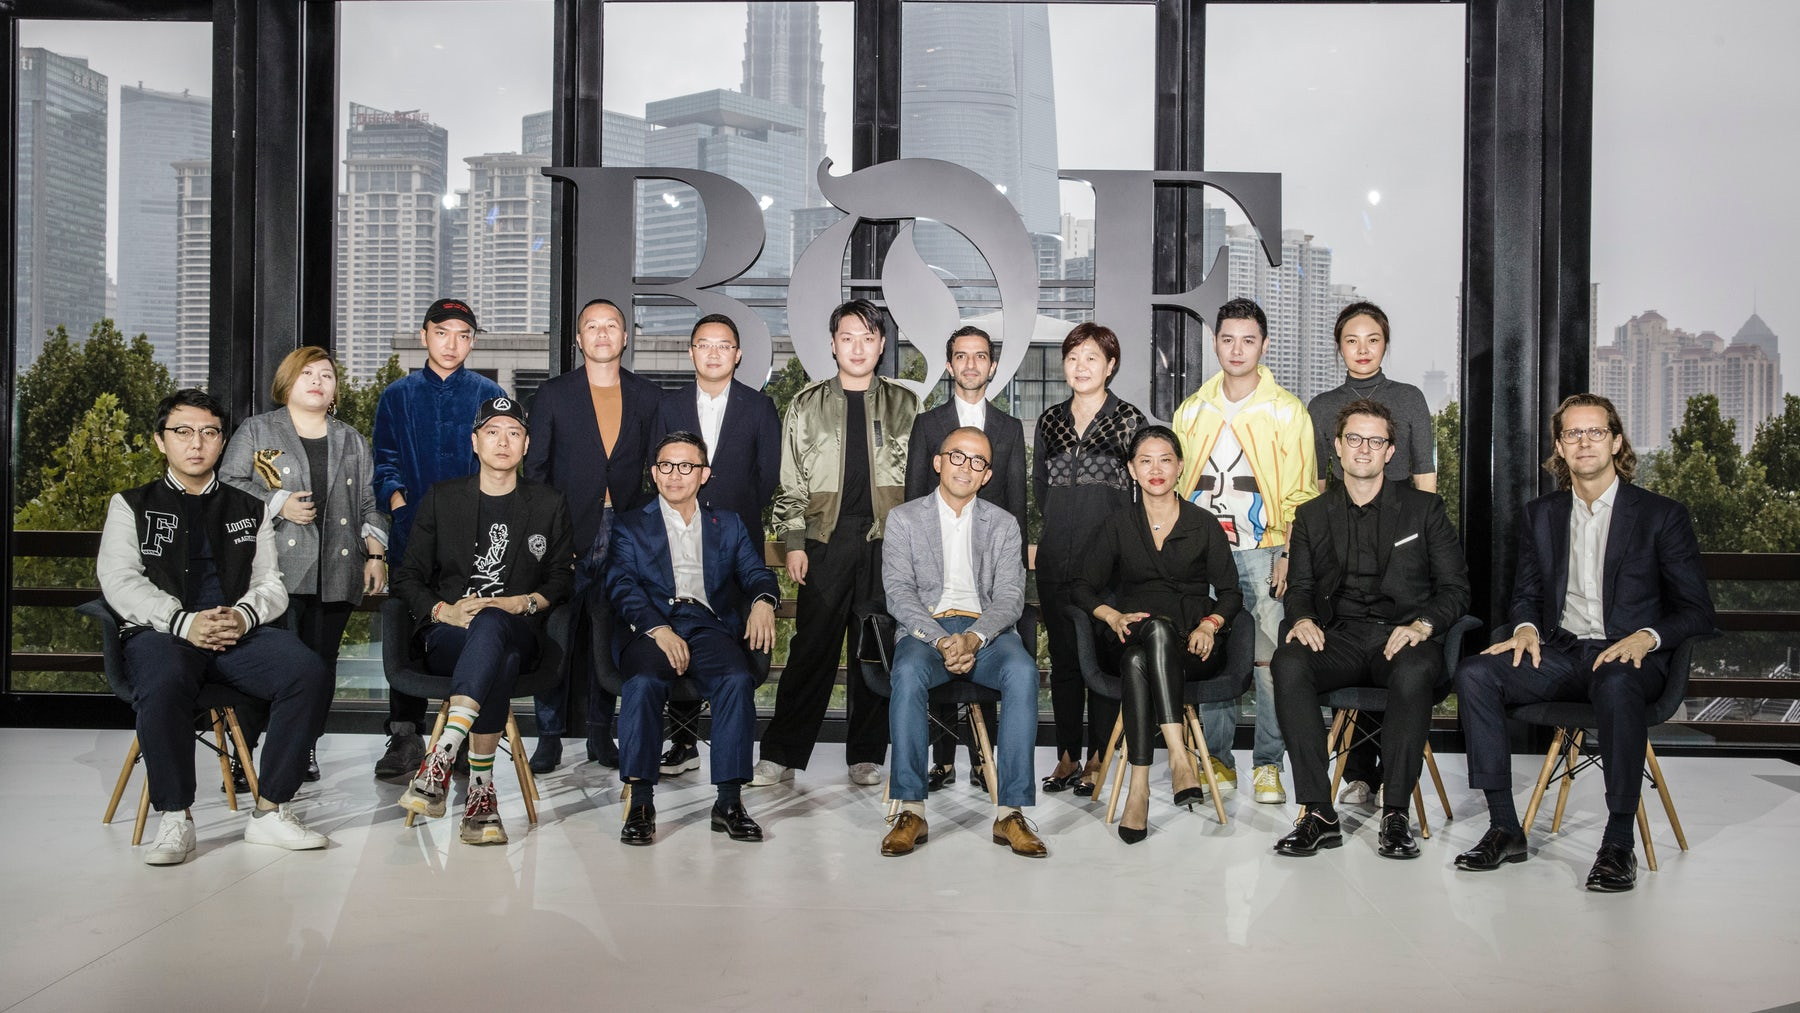 Speakers attend the BoF China Summit during Shanghai Fashion Week at Fosun Foundation in Shanghai, China | Source: Getty Images